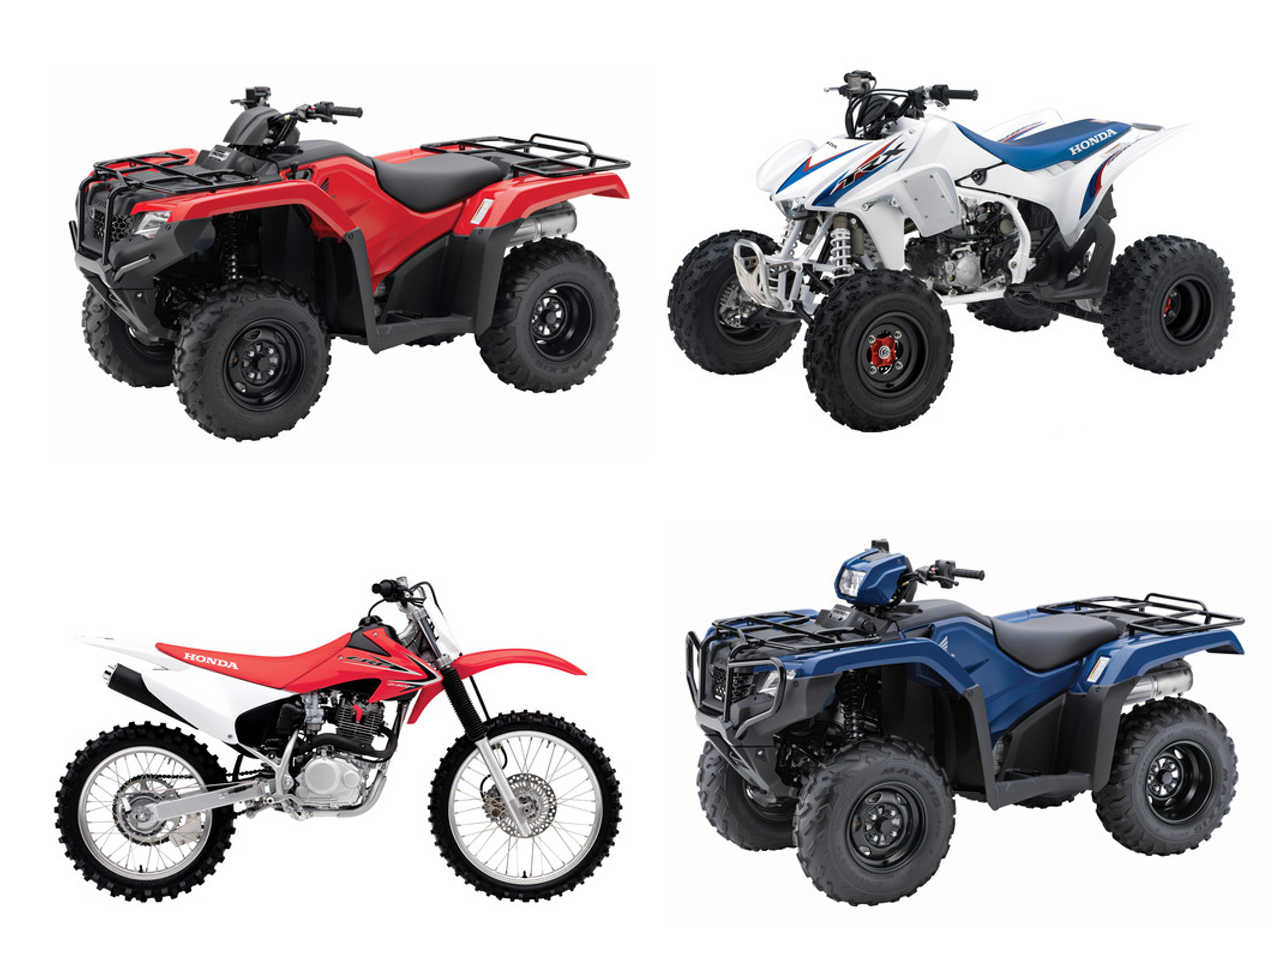 More New Off Road Models Expand The 2014 Honda Lineup